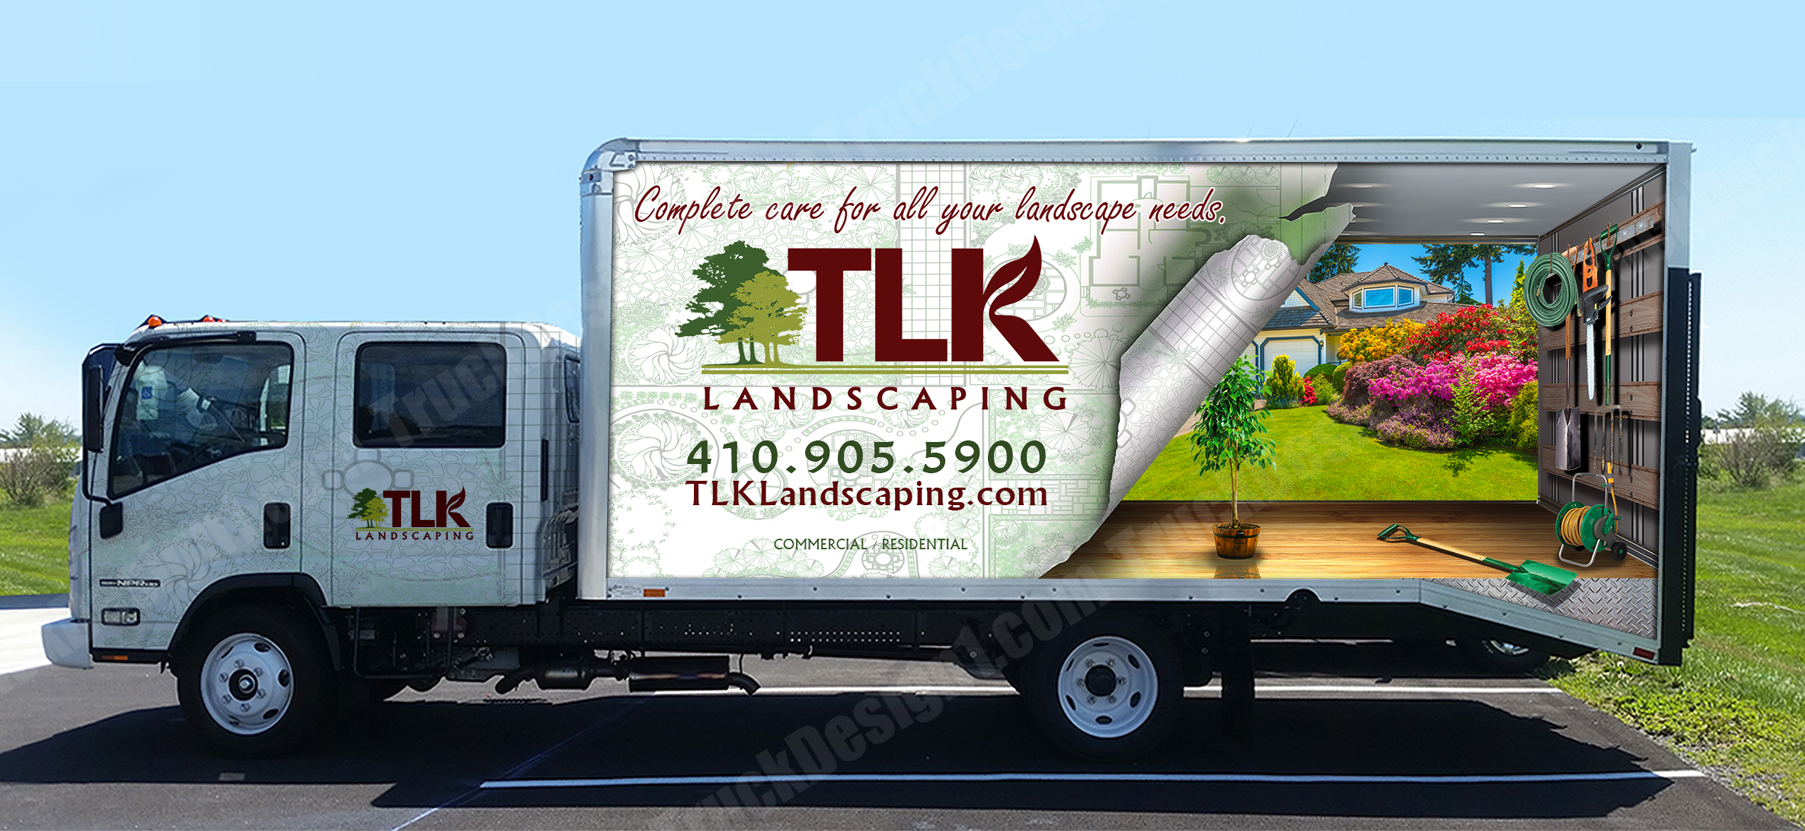 Truck Design - Truck, Van, Car, Wraps Graphic Design, 3D